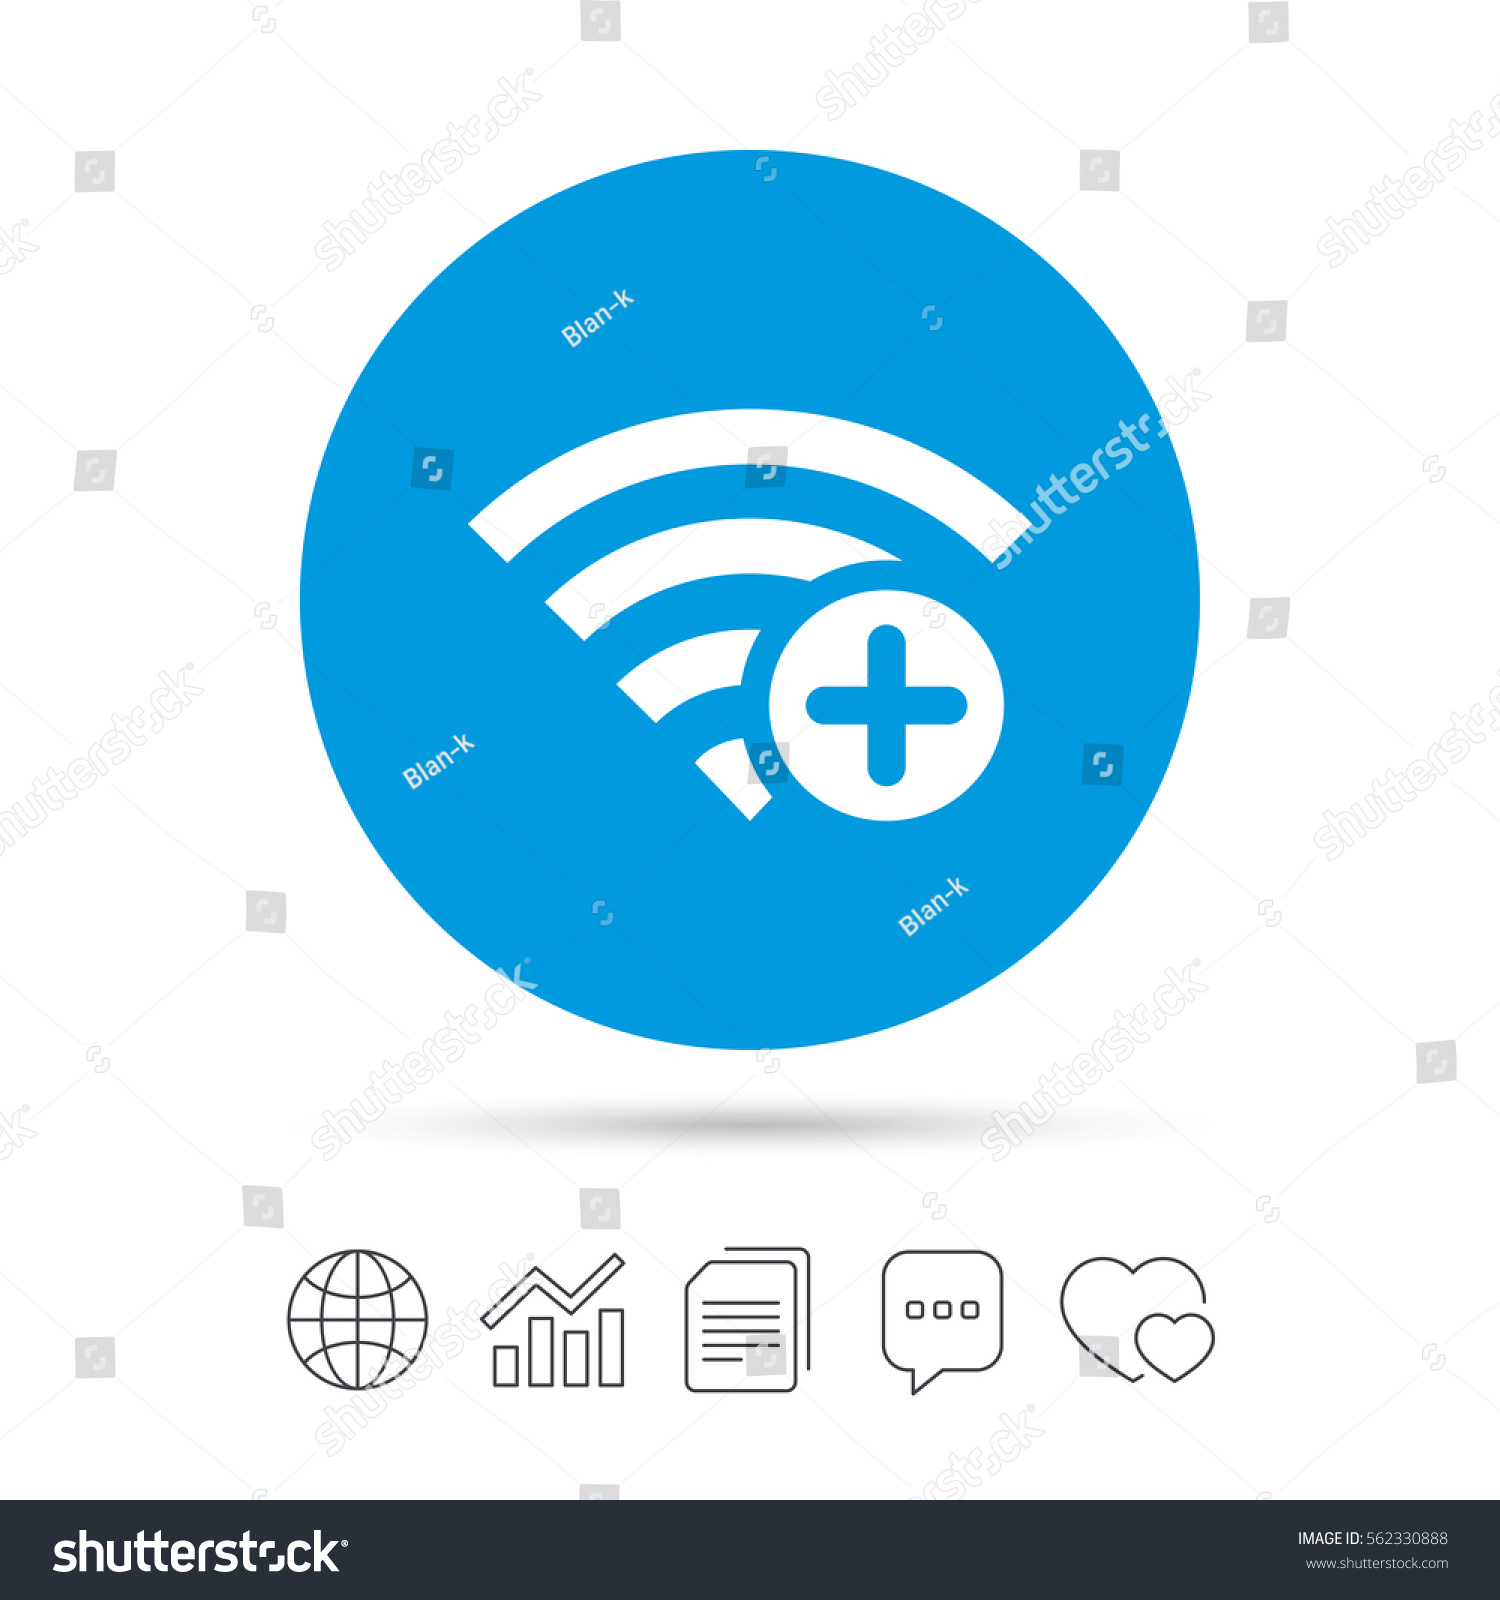 Add trademark symbol images symbol and sign ideas wifi plus sign add wifi symbol stock vector 562330888 shutterstock add wi fi symbol wireless network buycottarizona